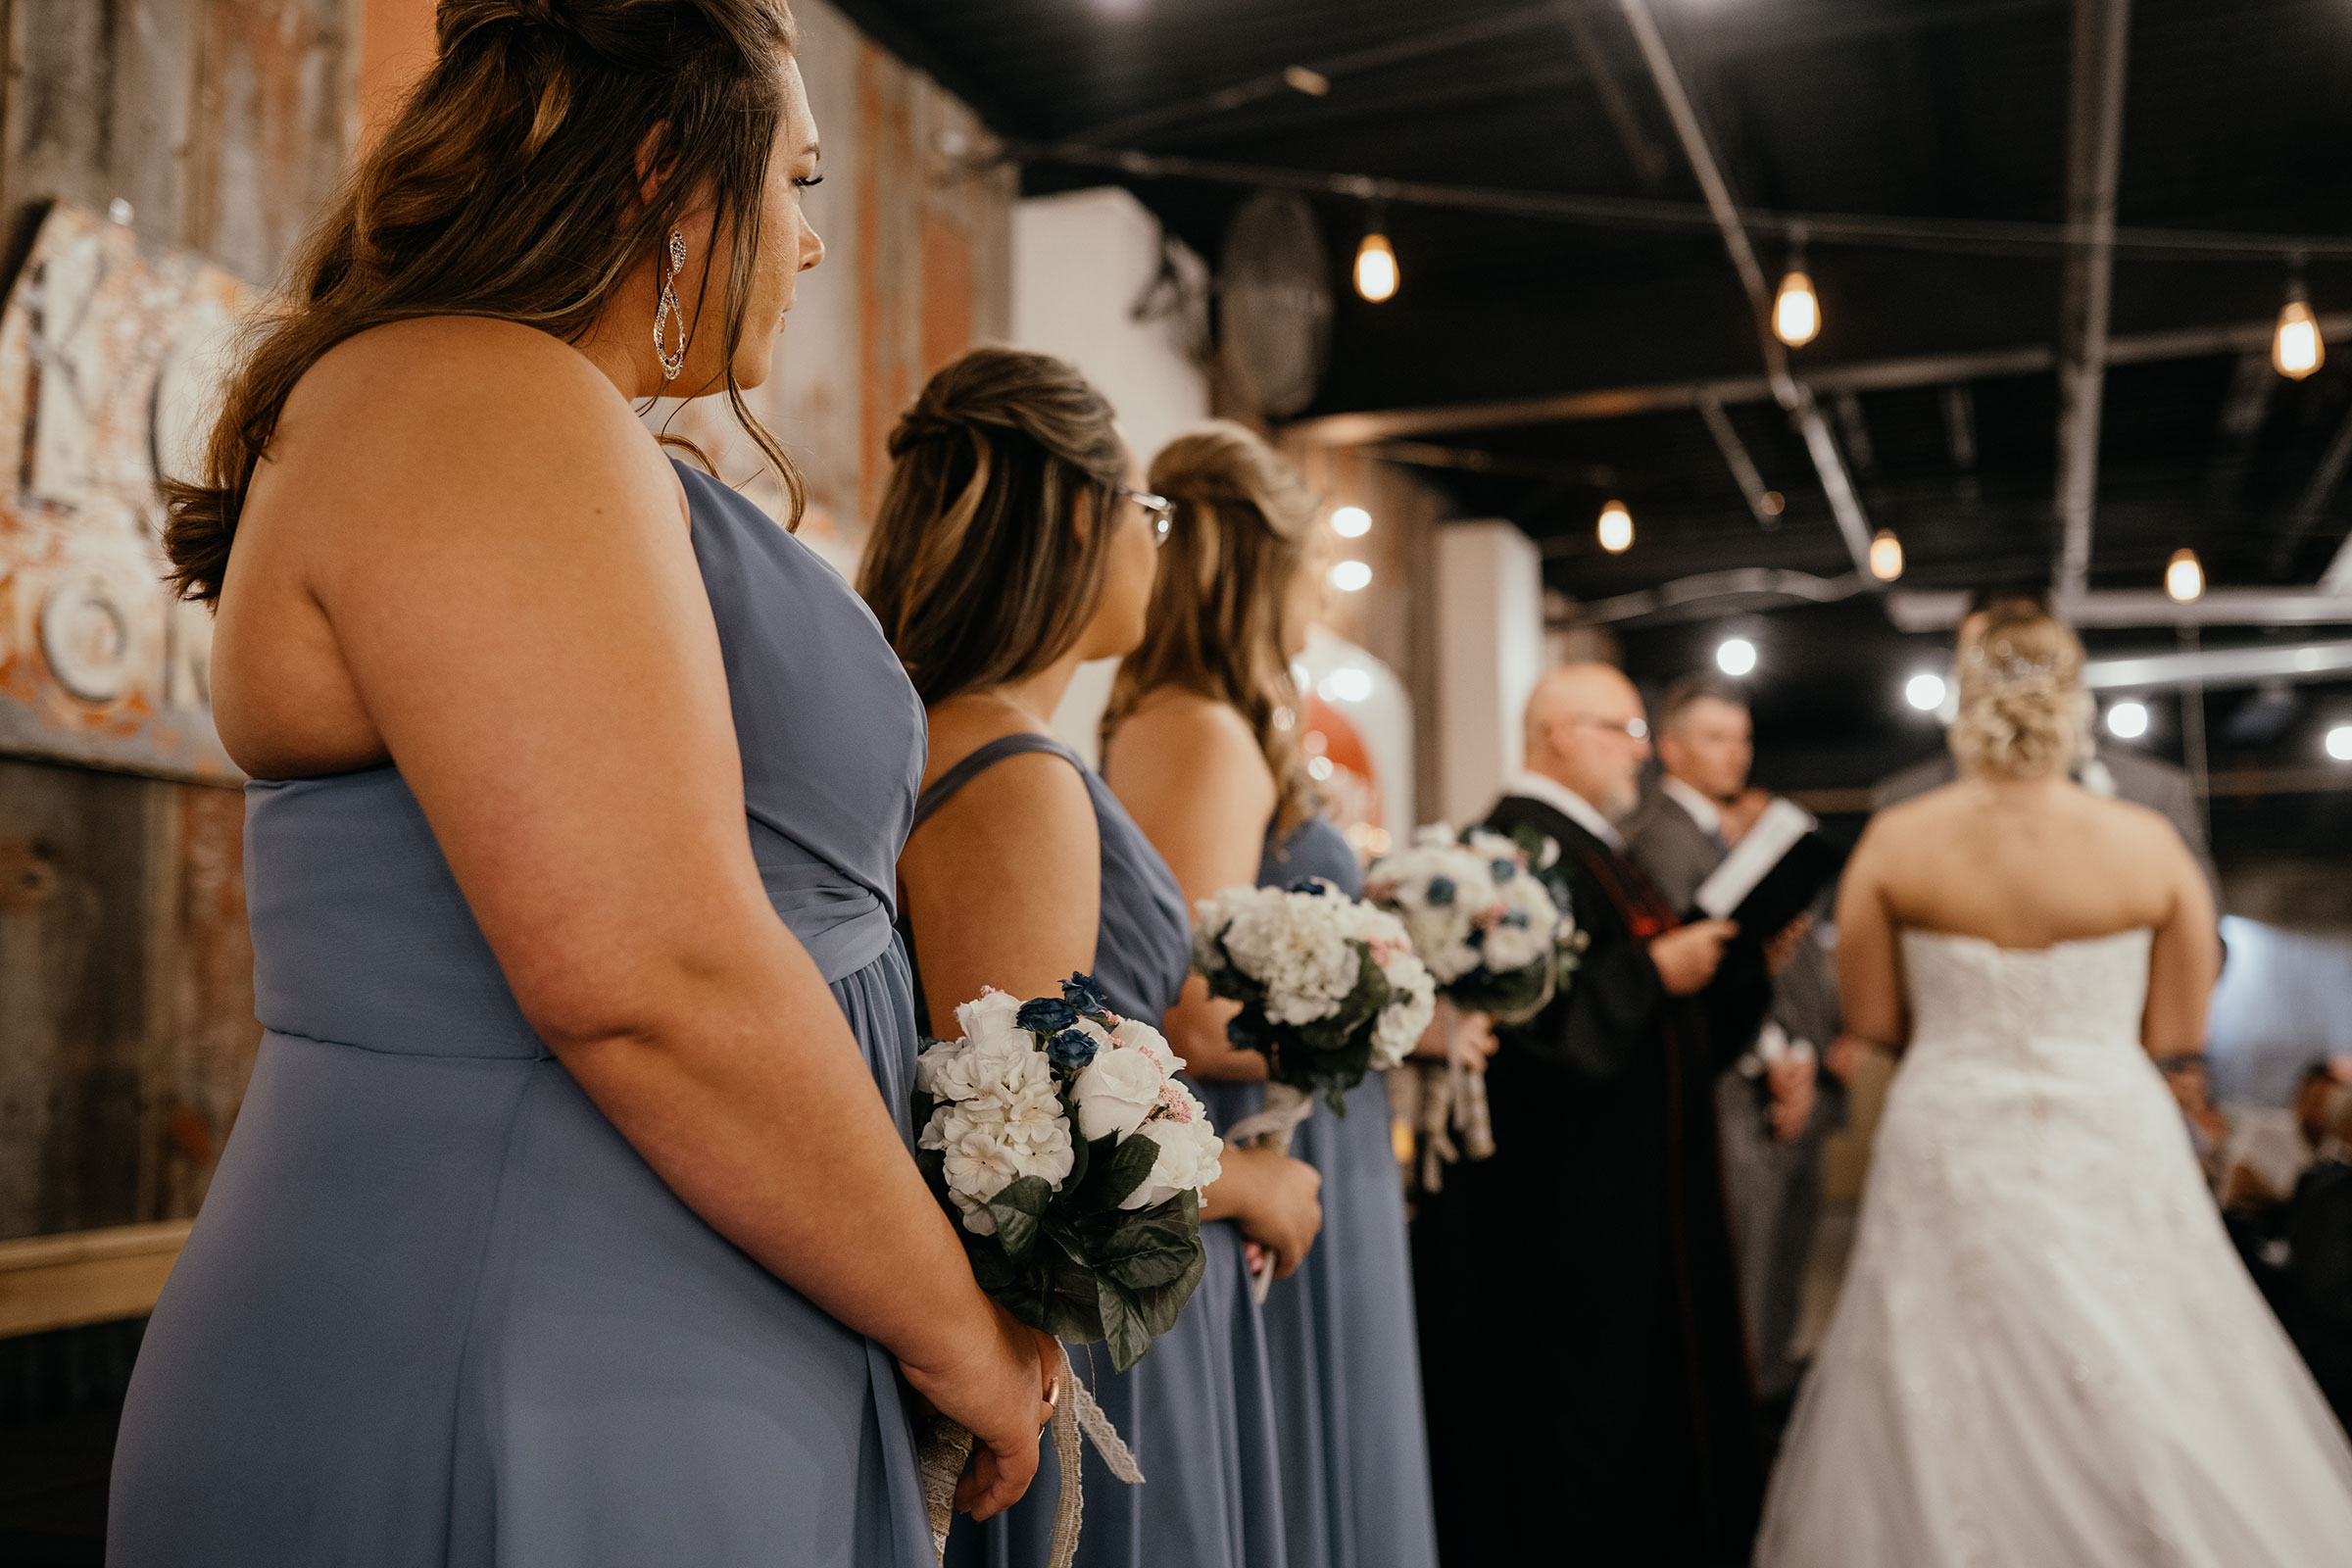 bridesmaids-standing-up-at-ceremony-decades-event-center-building-desmoines-iowa-raelyn-ramey-photography..jpg